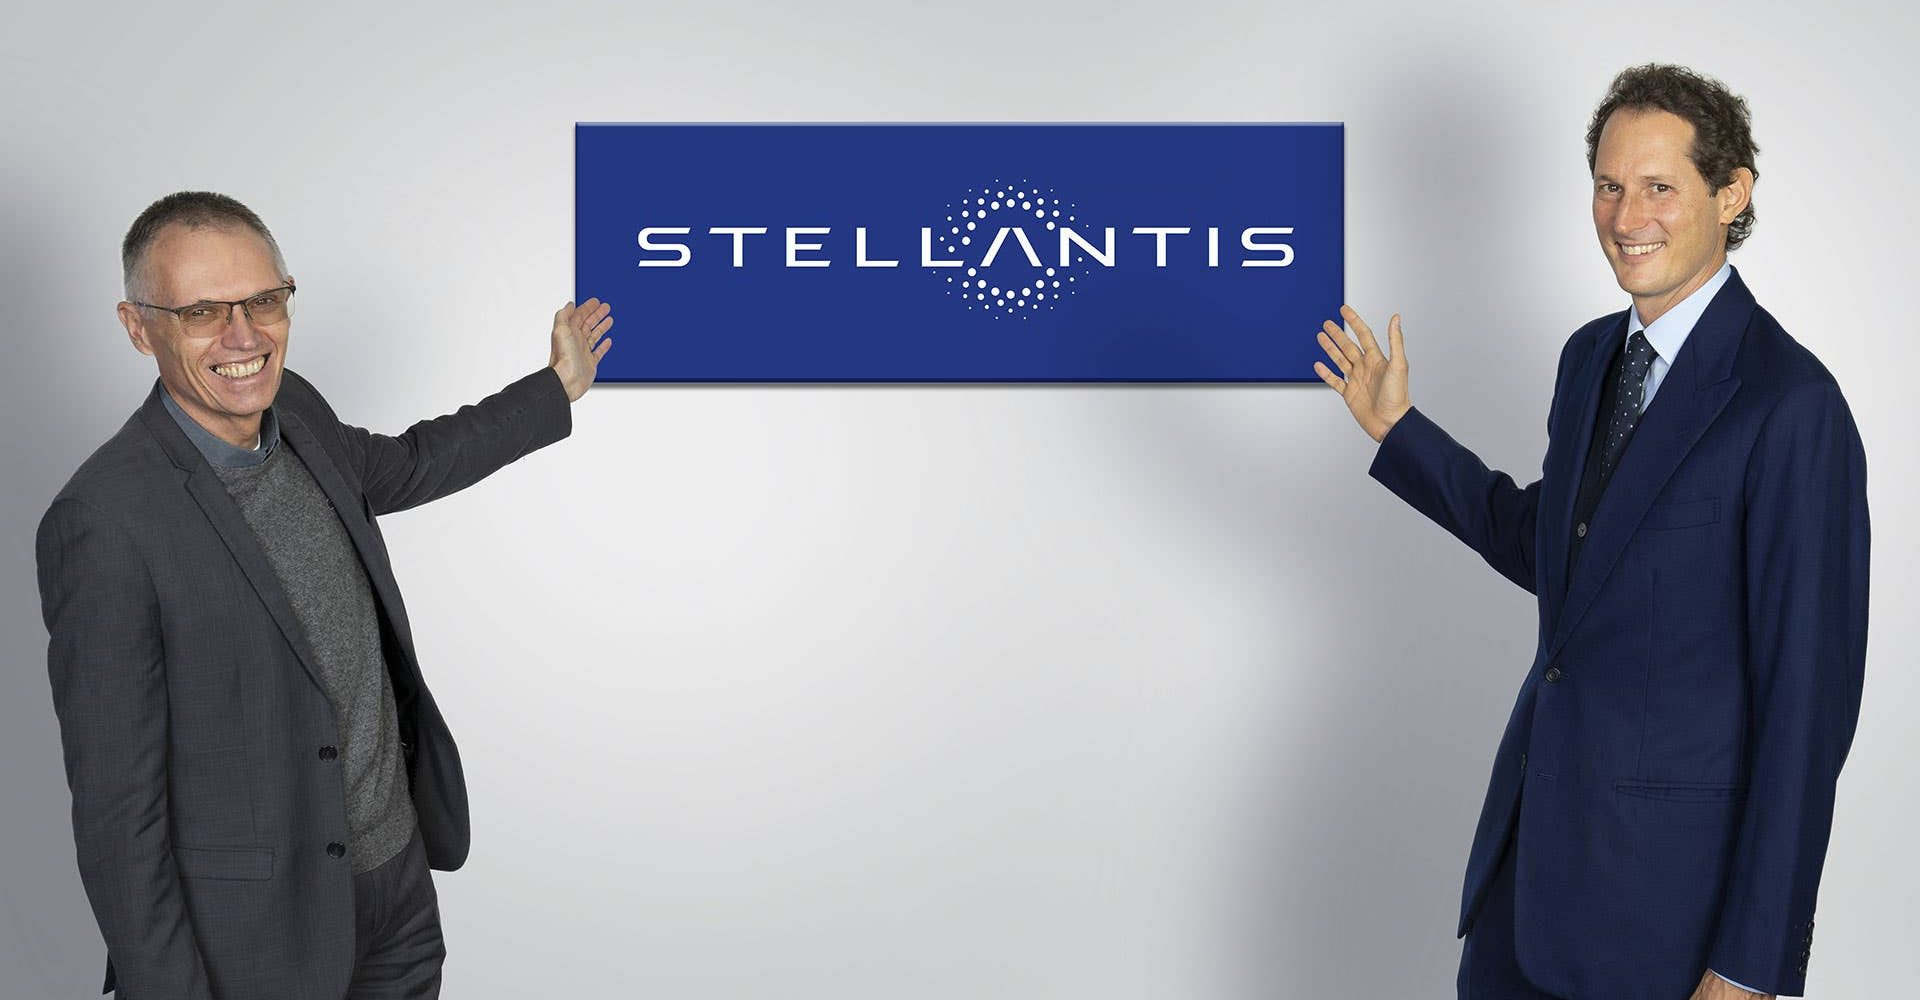 What is Stellantis? The new car company that's already one of the biggest in the world